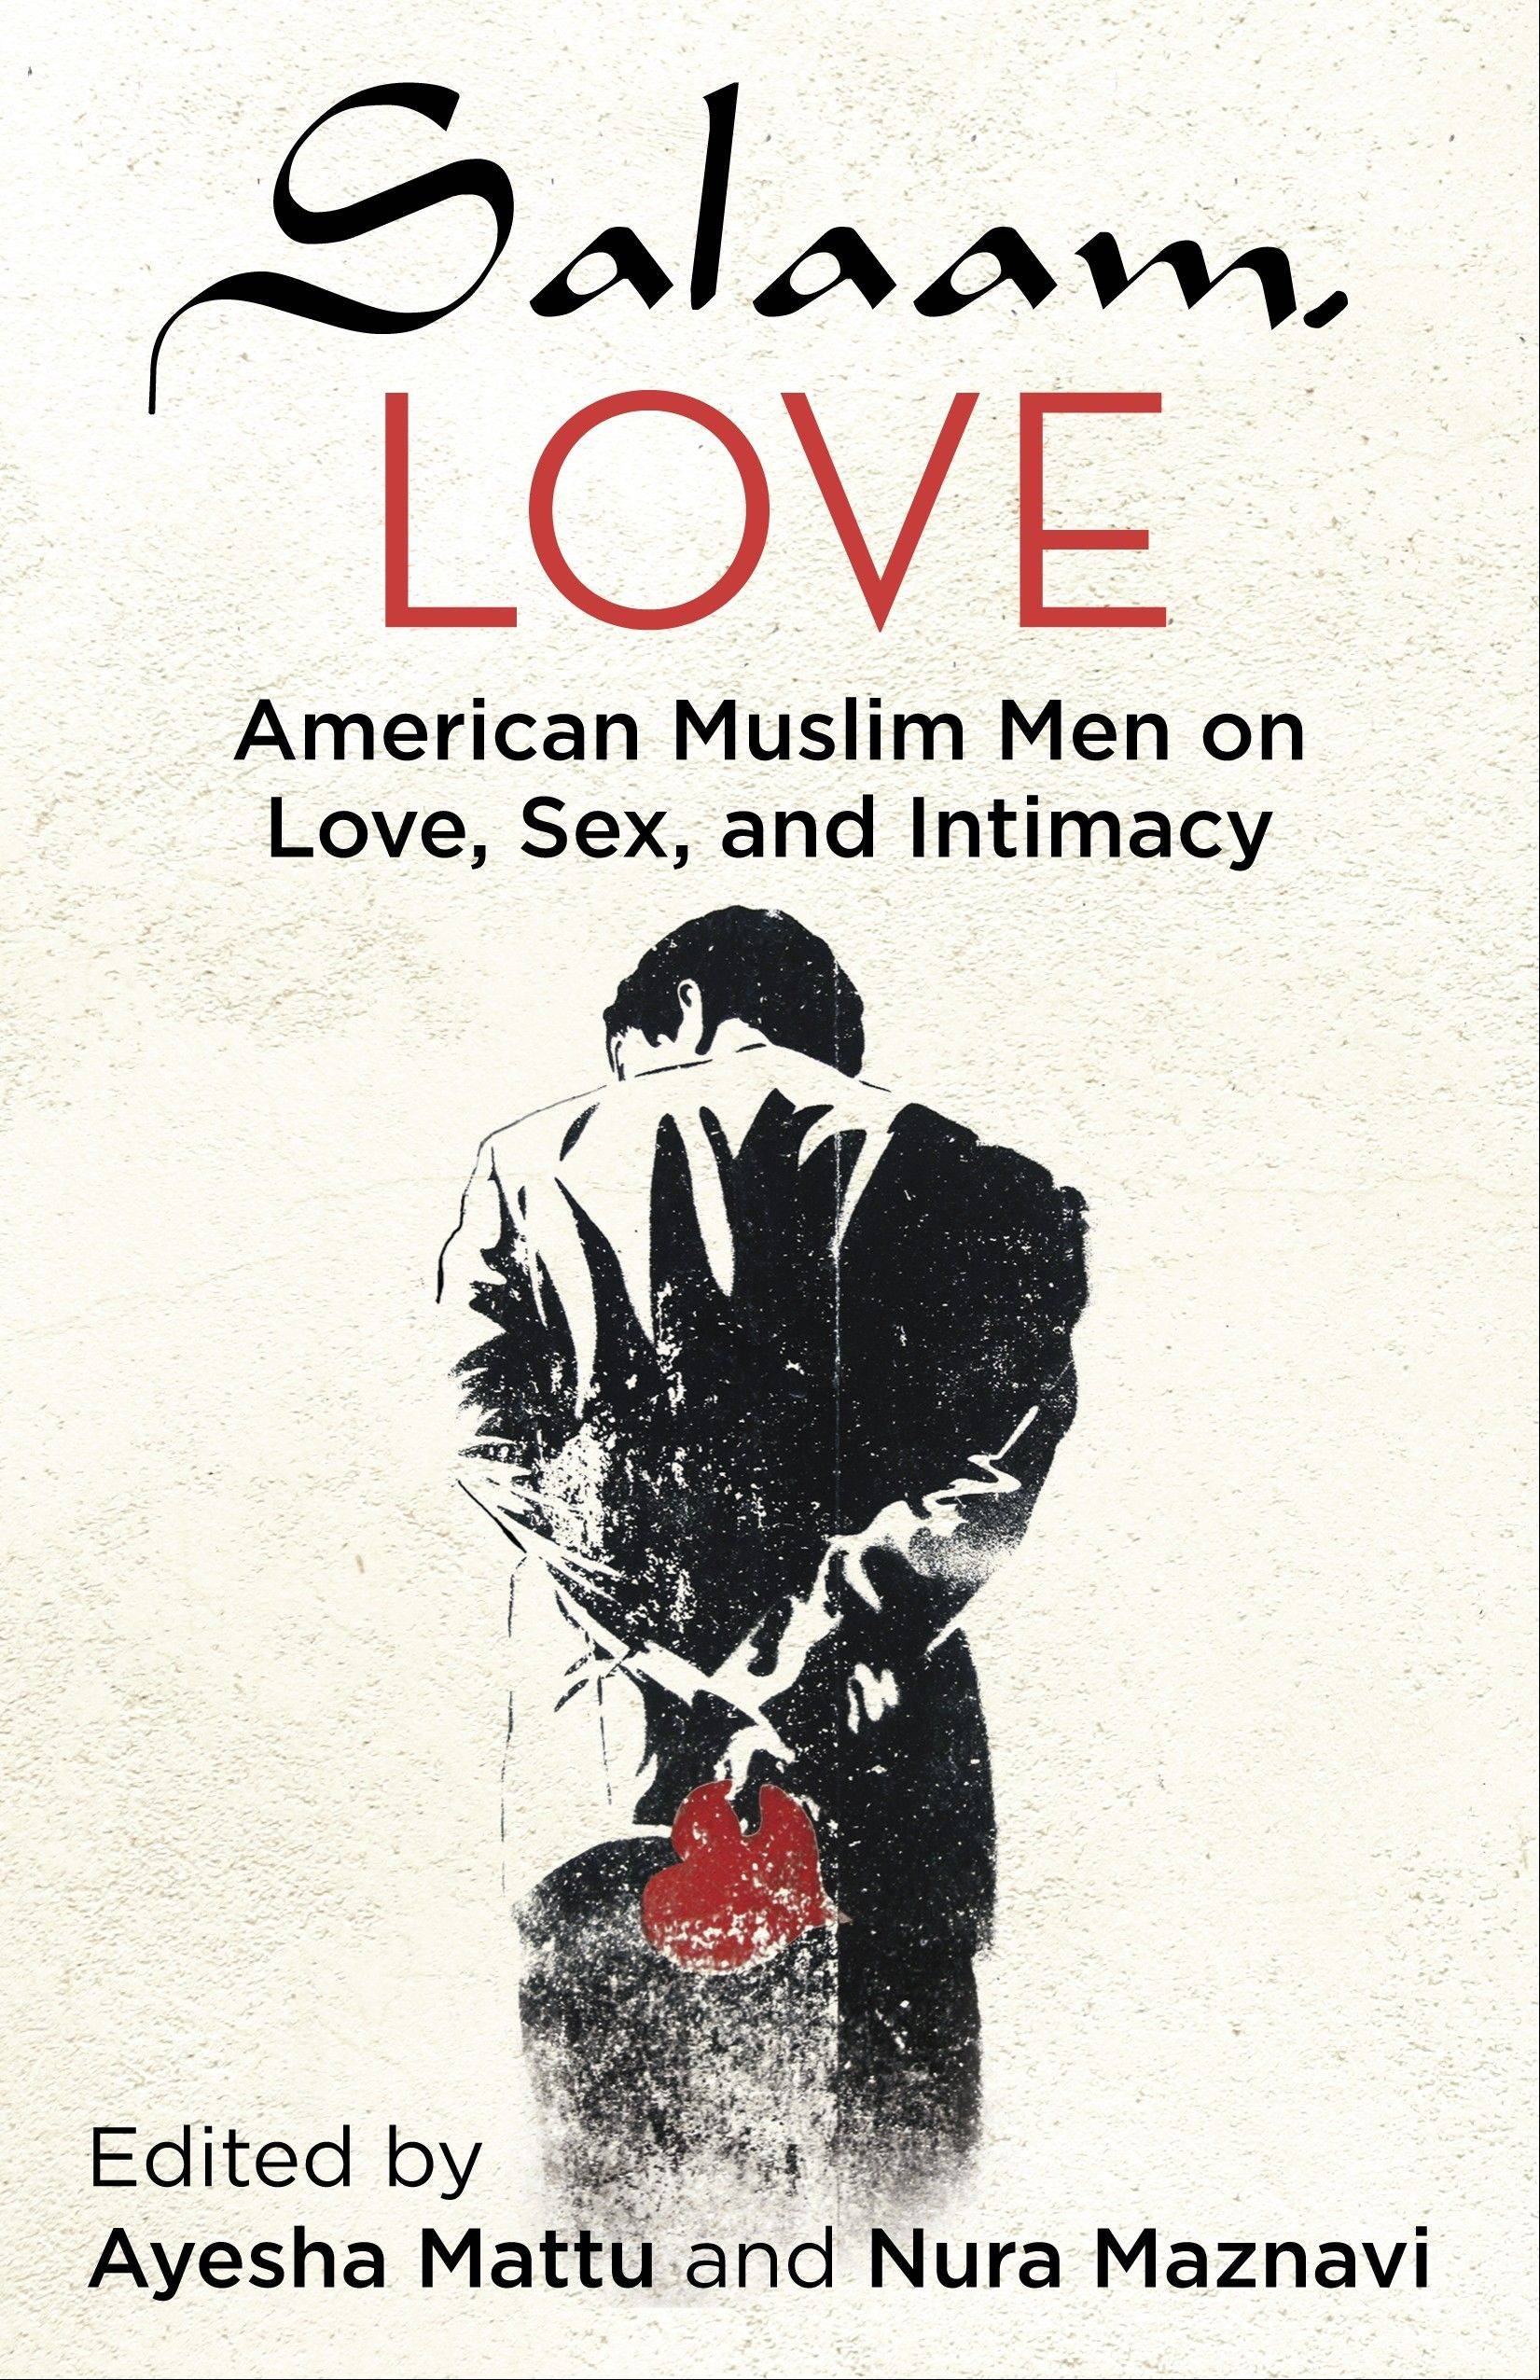 """Salaam Love: American Muslin Men on Love, Sex and Intimacy"" was compiled by Ayesha Mattu and Nura Maznavi."